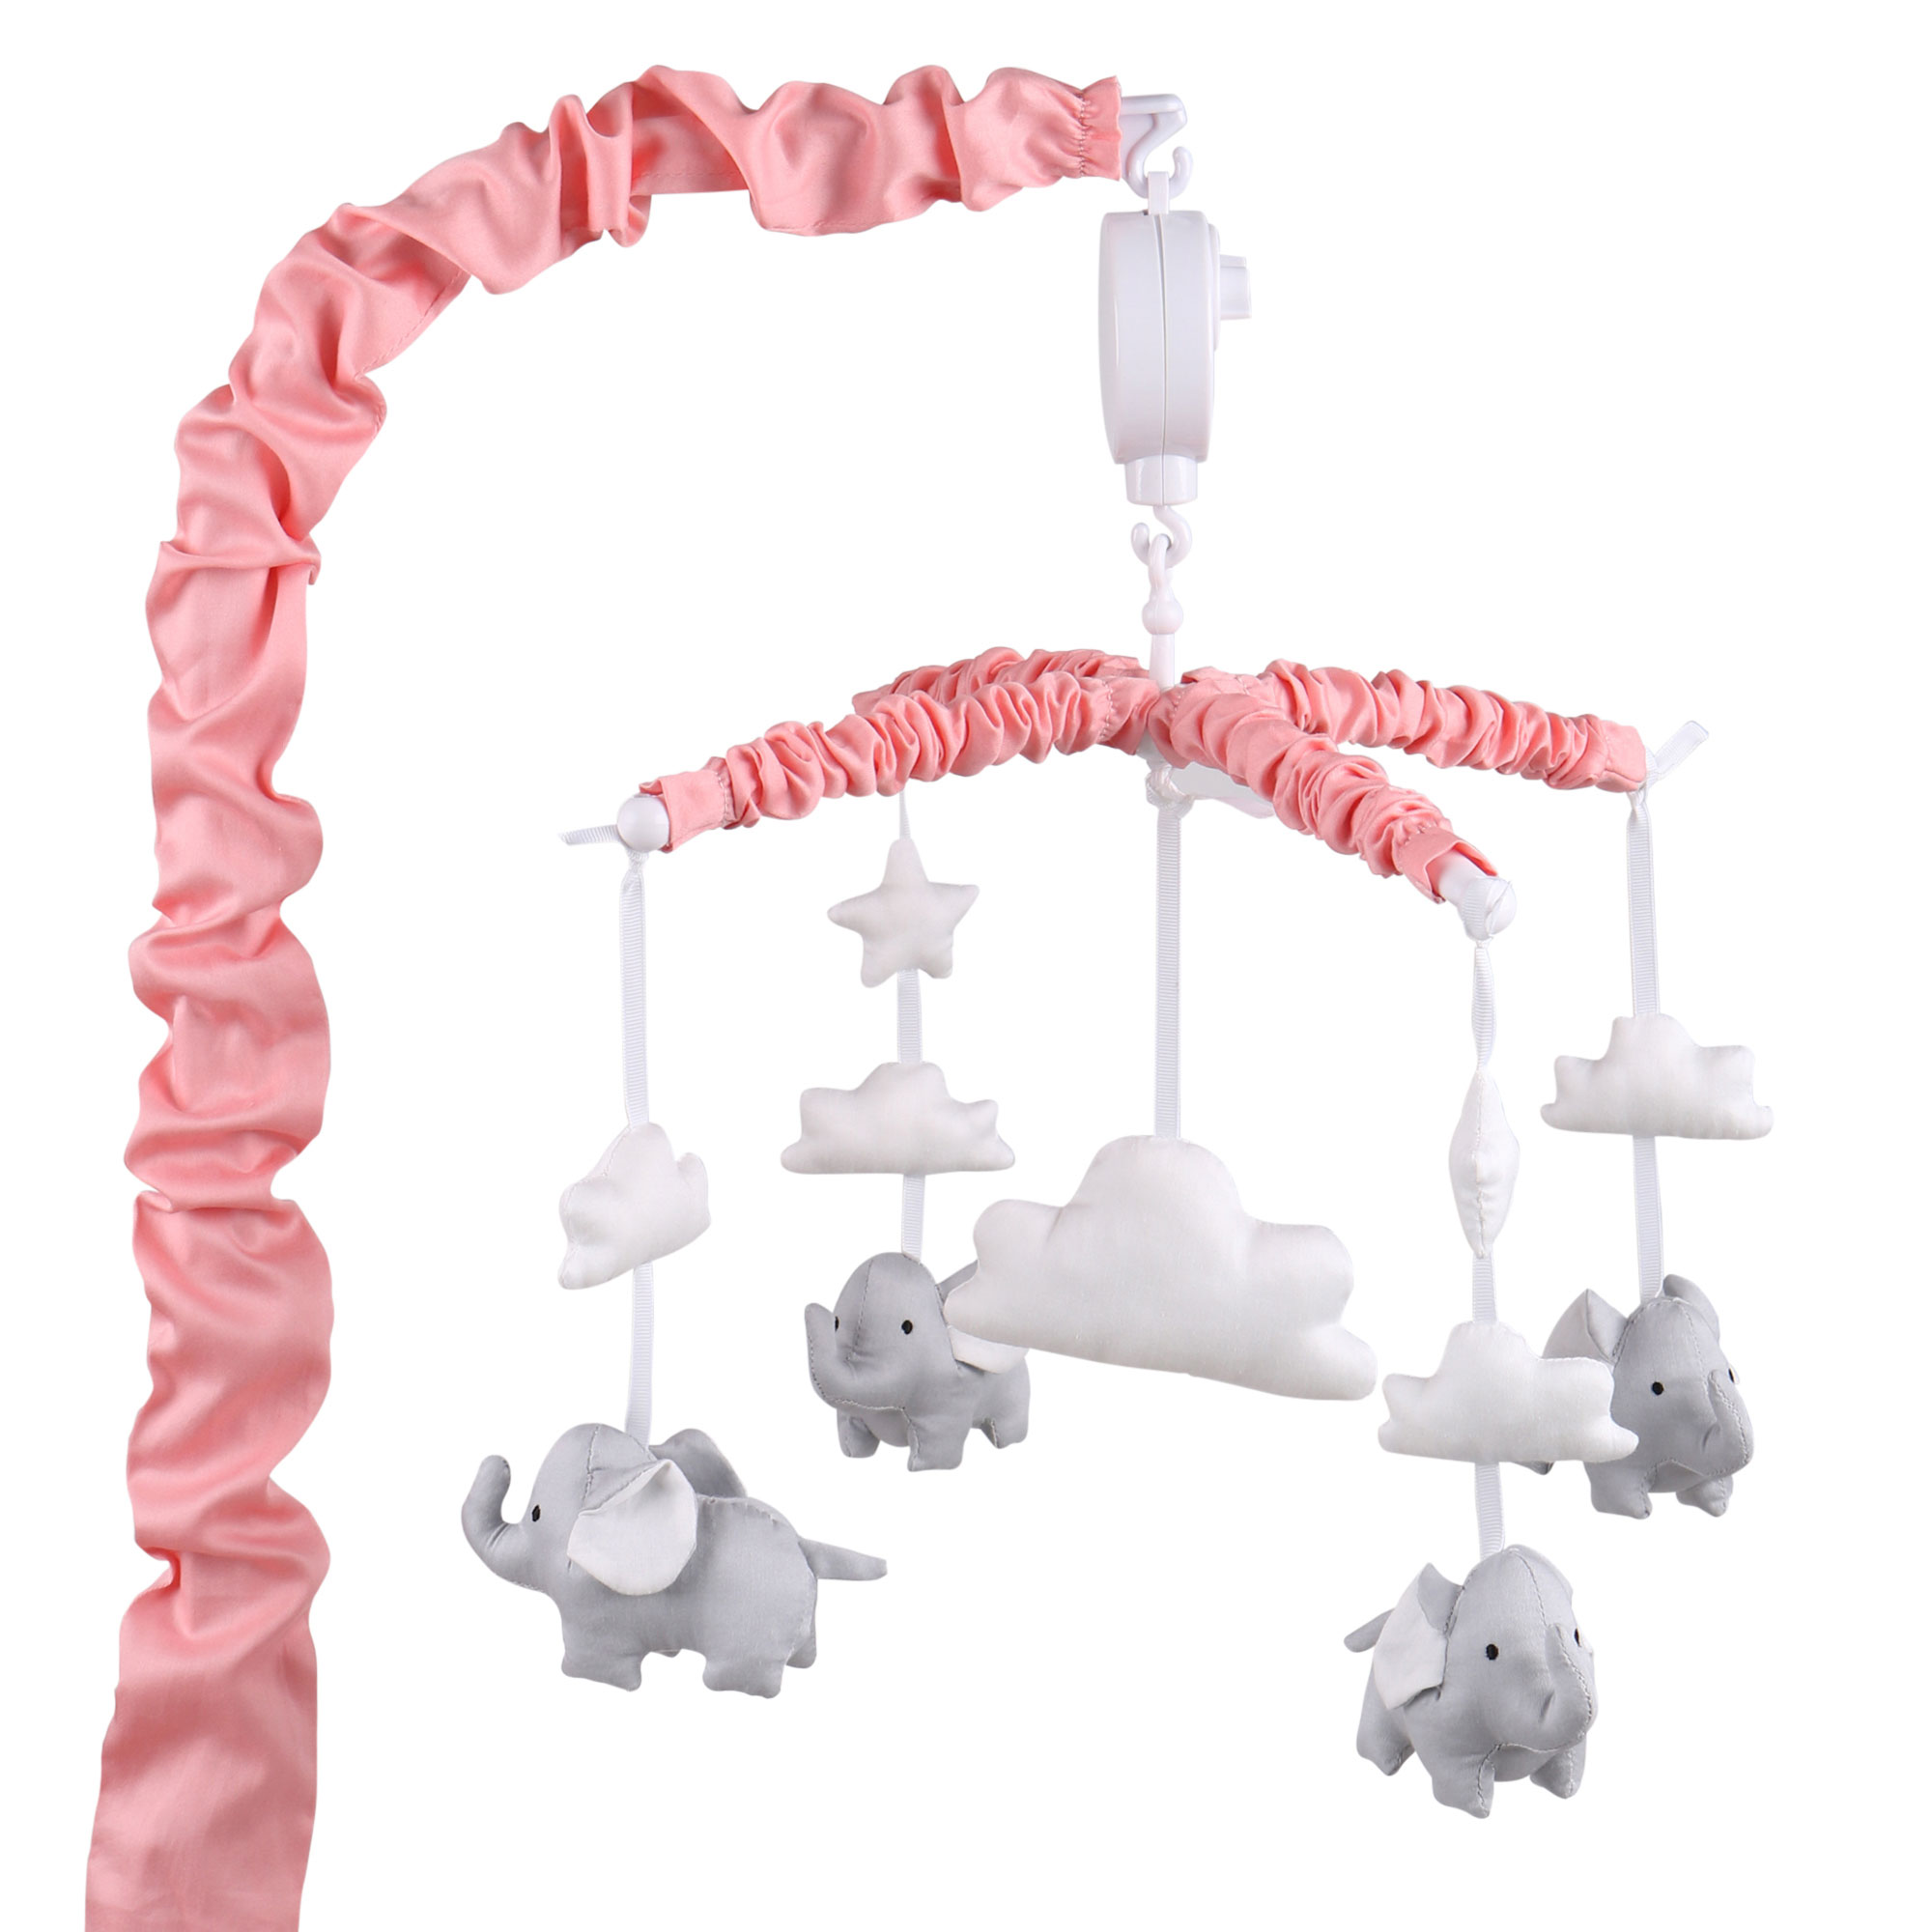 Coral Pink Digital Musical Crib Mobile With Elephants, Clouds & Stars by The Peanut Shell - Baby Girl Nursery Decor